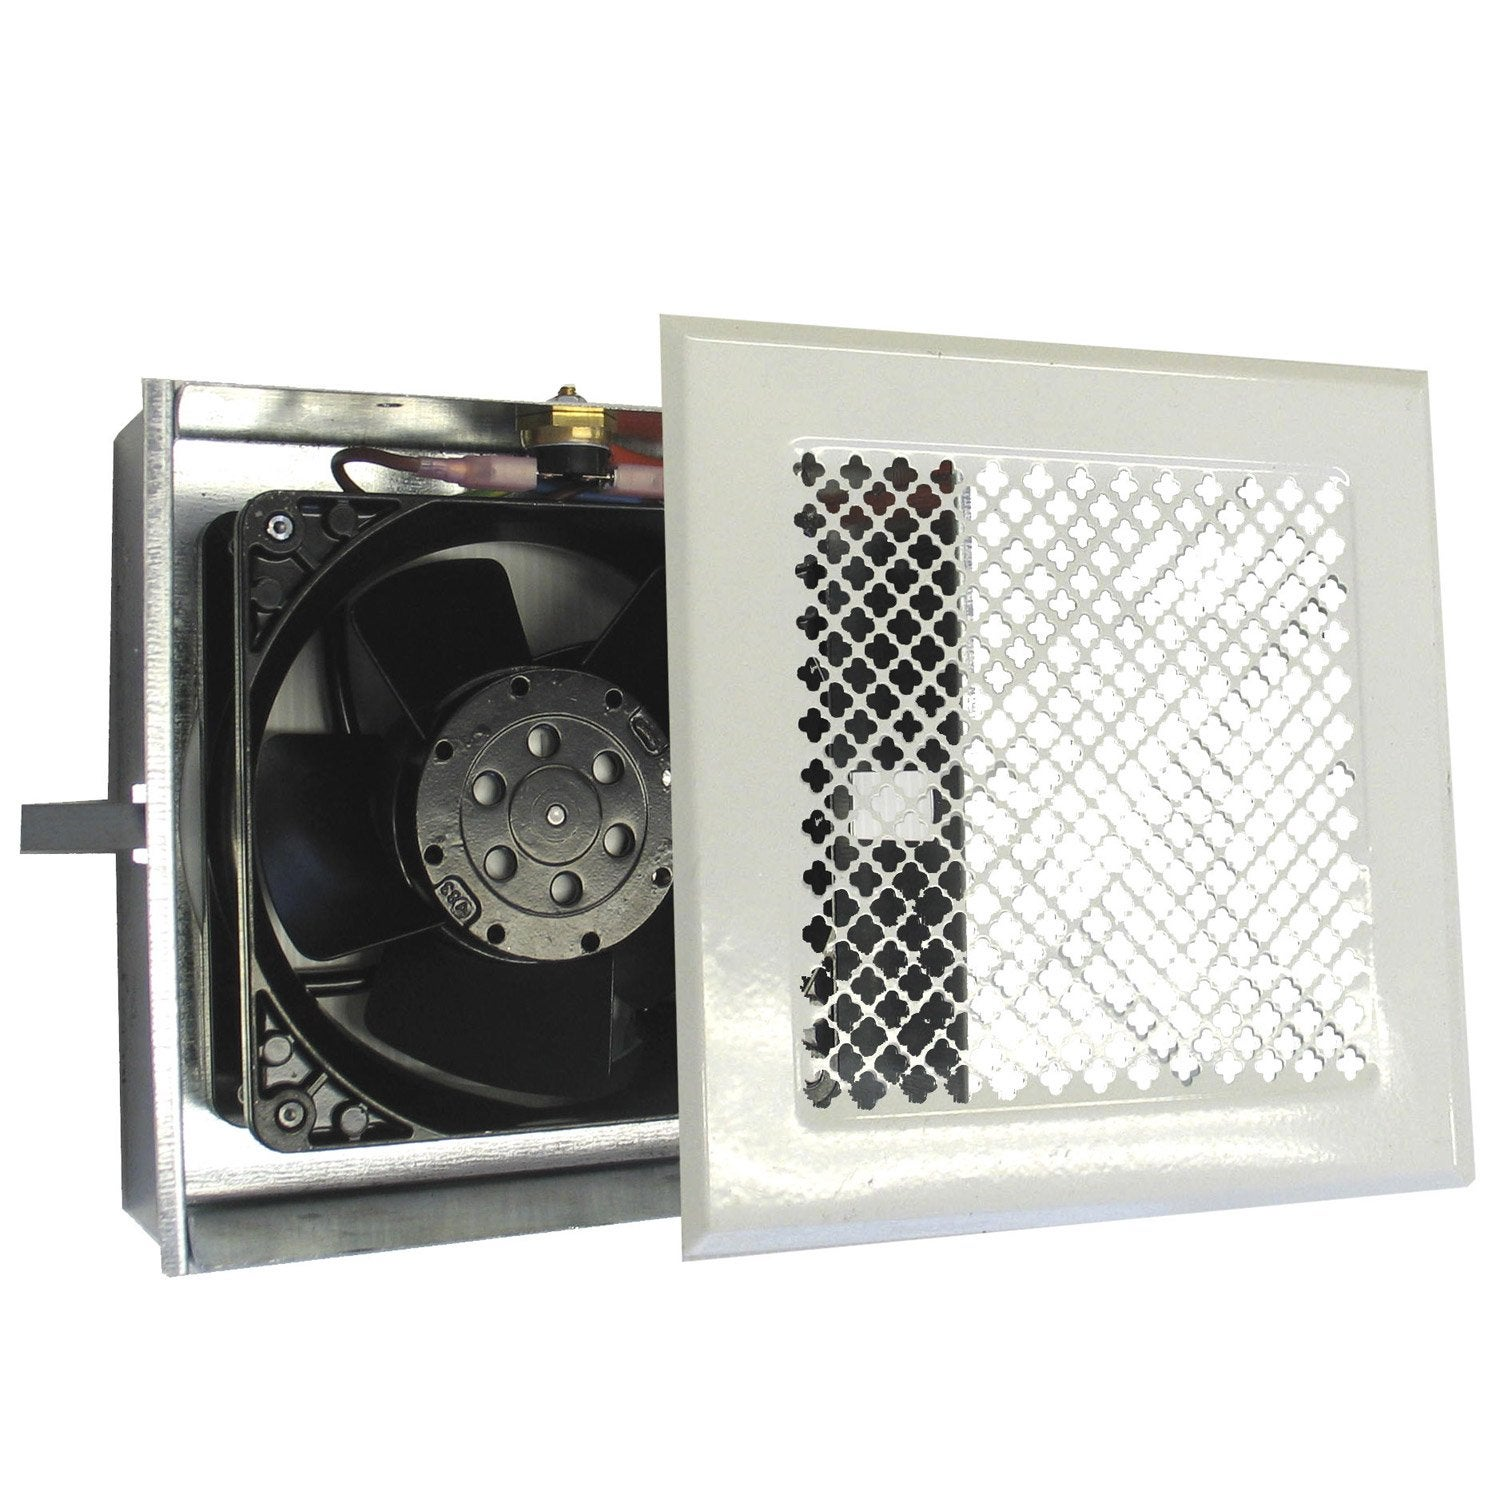 Boitier de ventilation air chaud pour hotte dmo blanc for Installer un extracteur d air